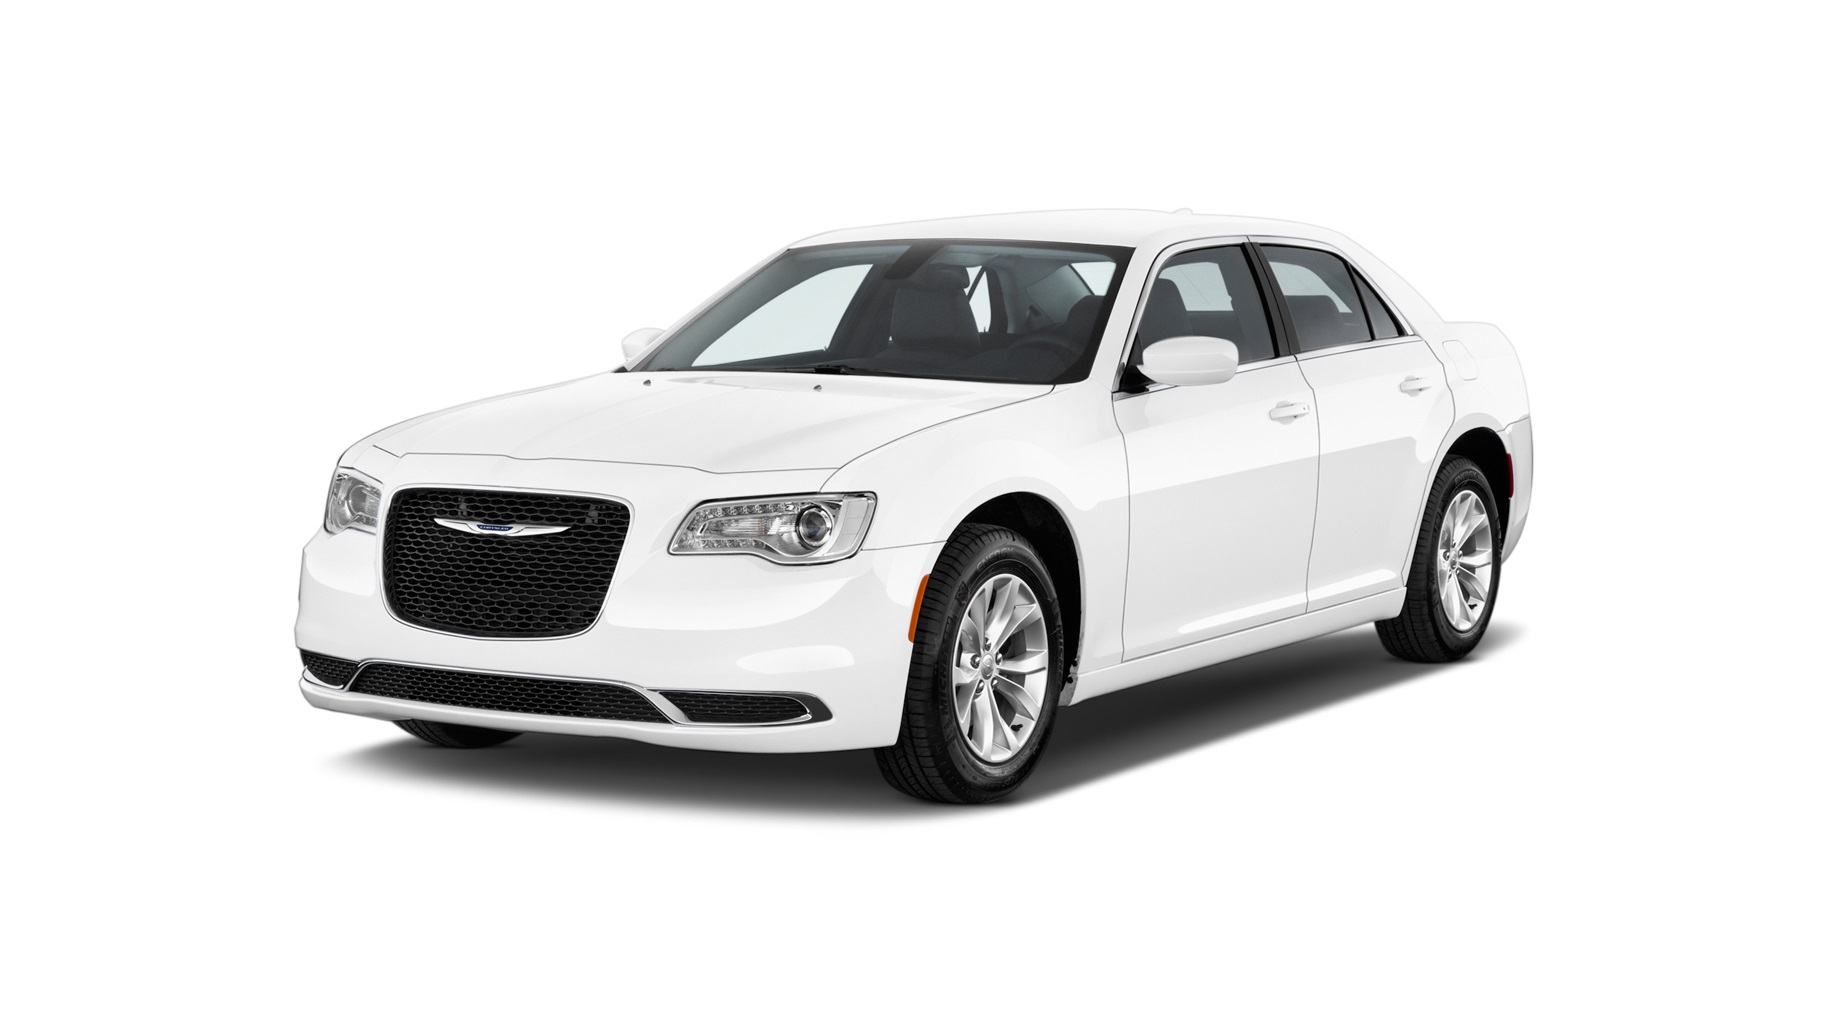 100 chrysler 300c 2018 new 2018 chrysler 300 price photos reviews safety ratings chrysler. Black Bedroom Furniture Sets. Home Design Ideas